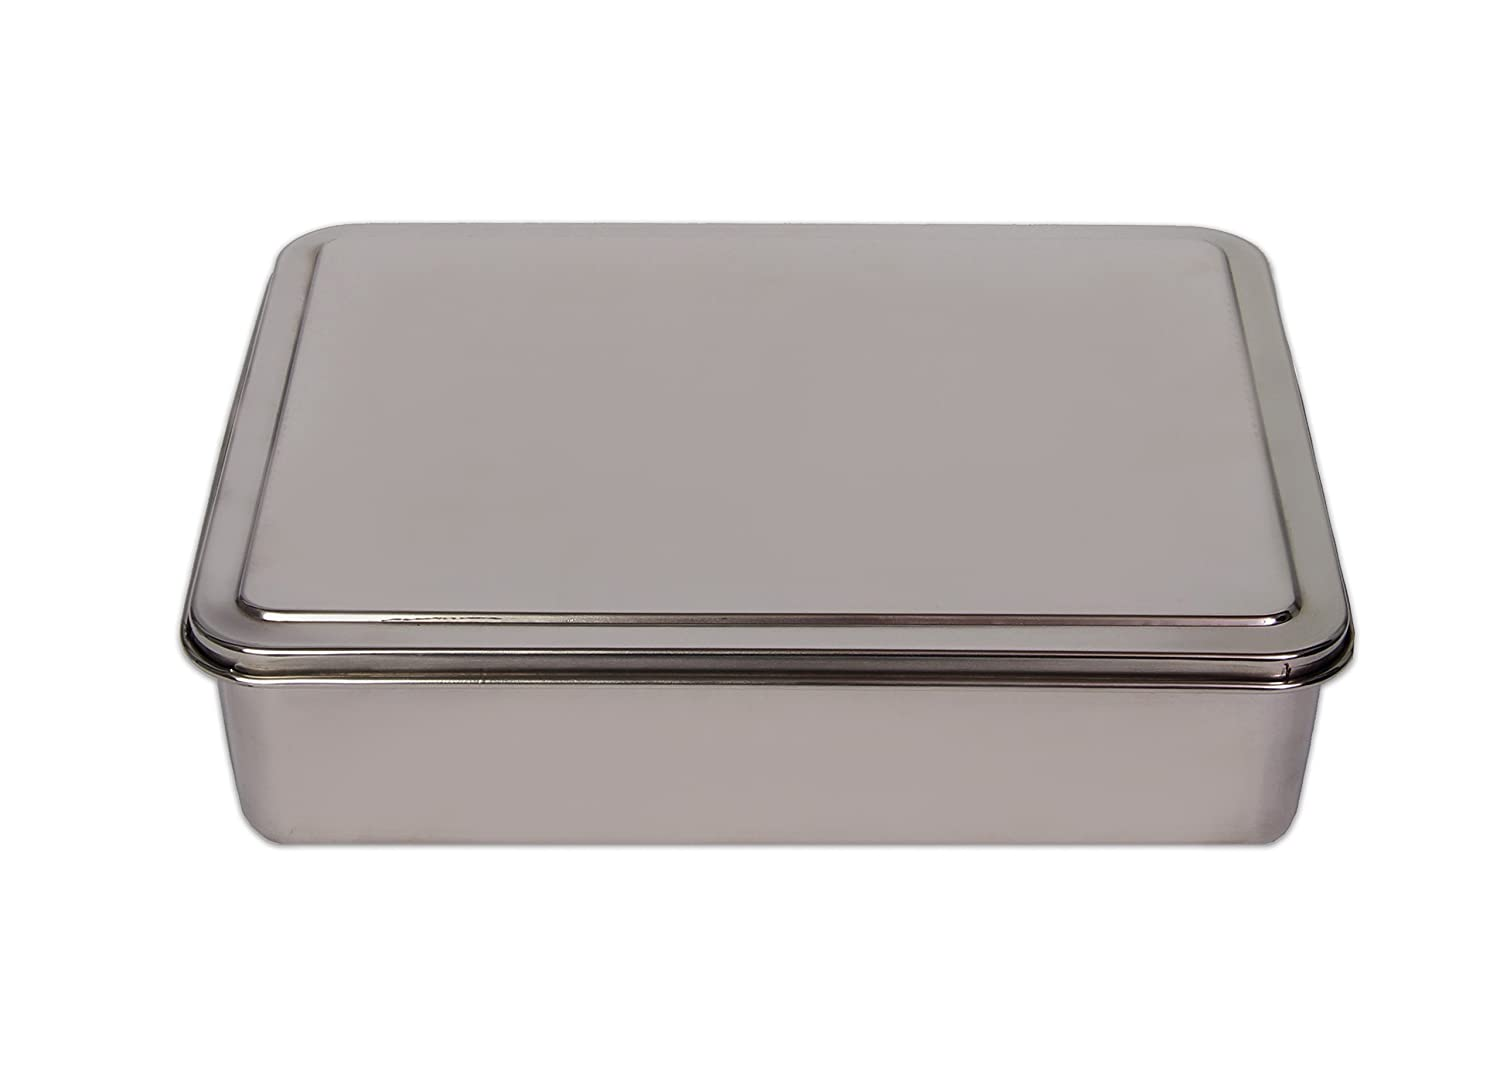 YBM HOME Stainless Steel Covered Cake Pan, Silver (Small-2401)